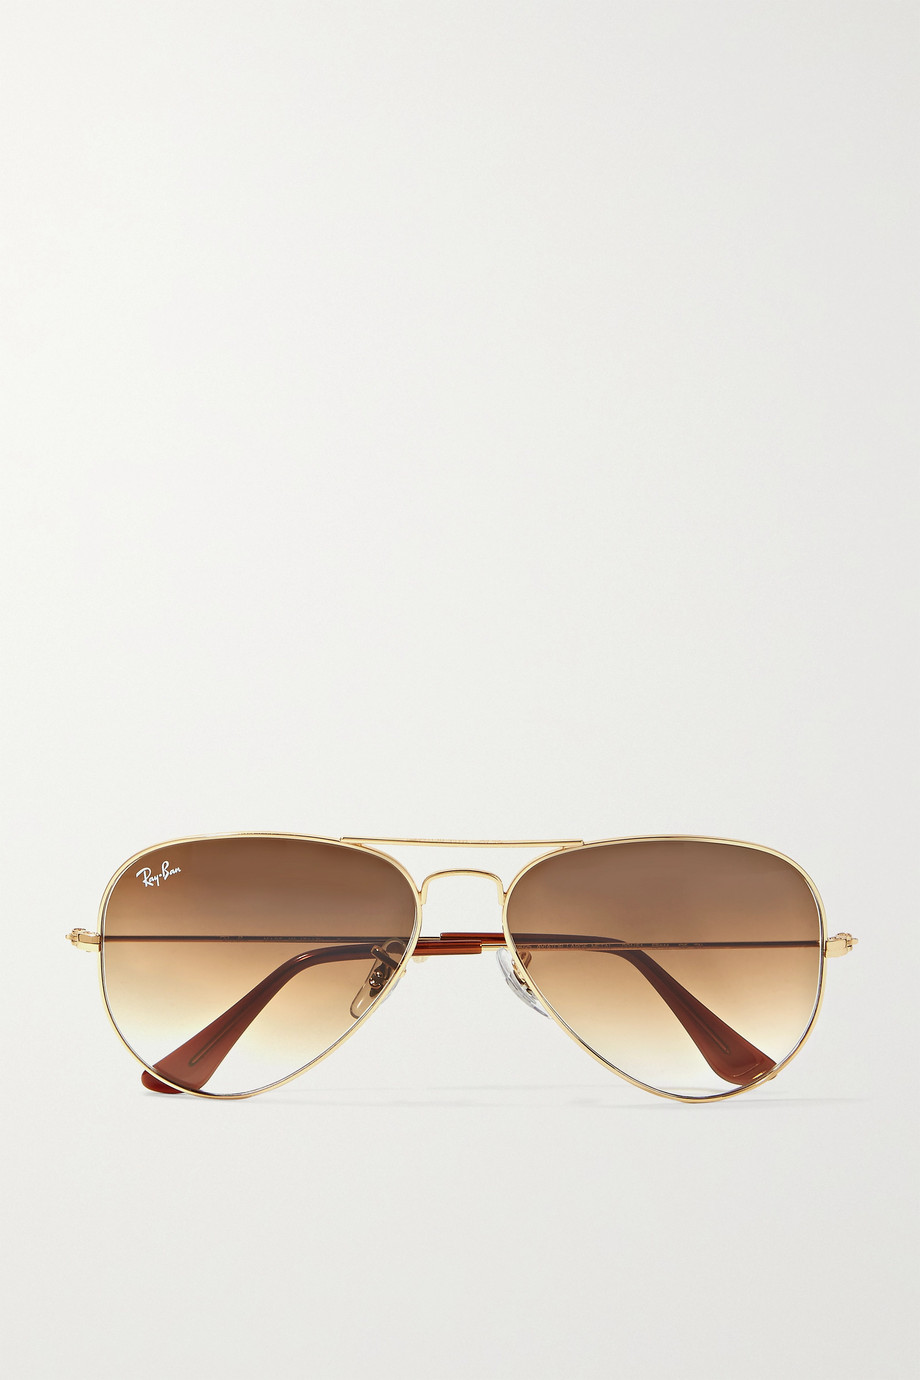 RAY-BAN Aviator gold-tone sunglasses